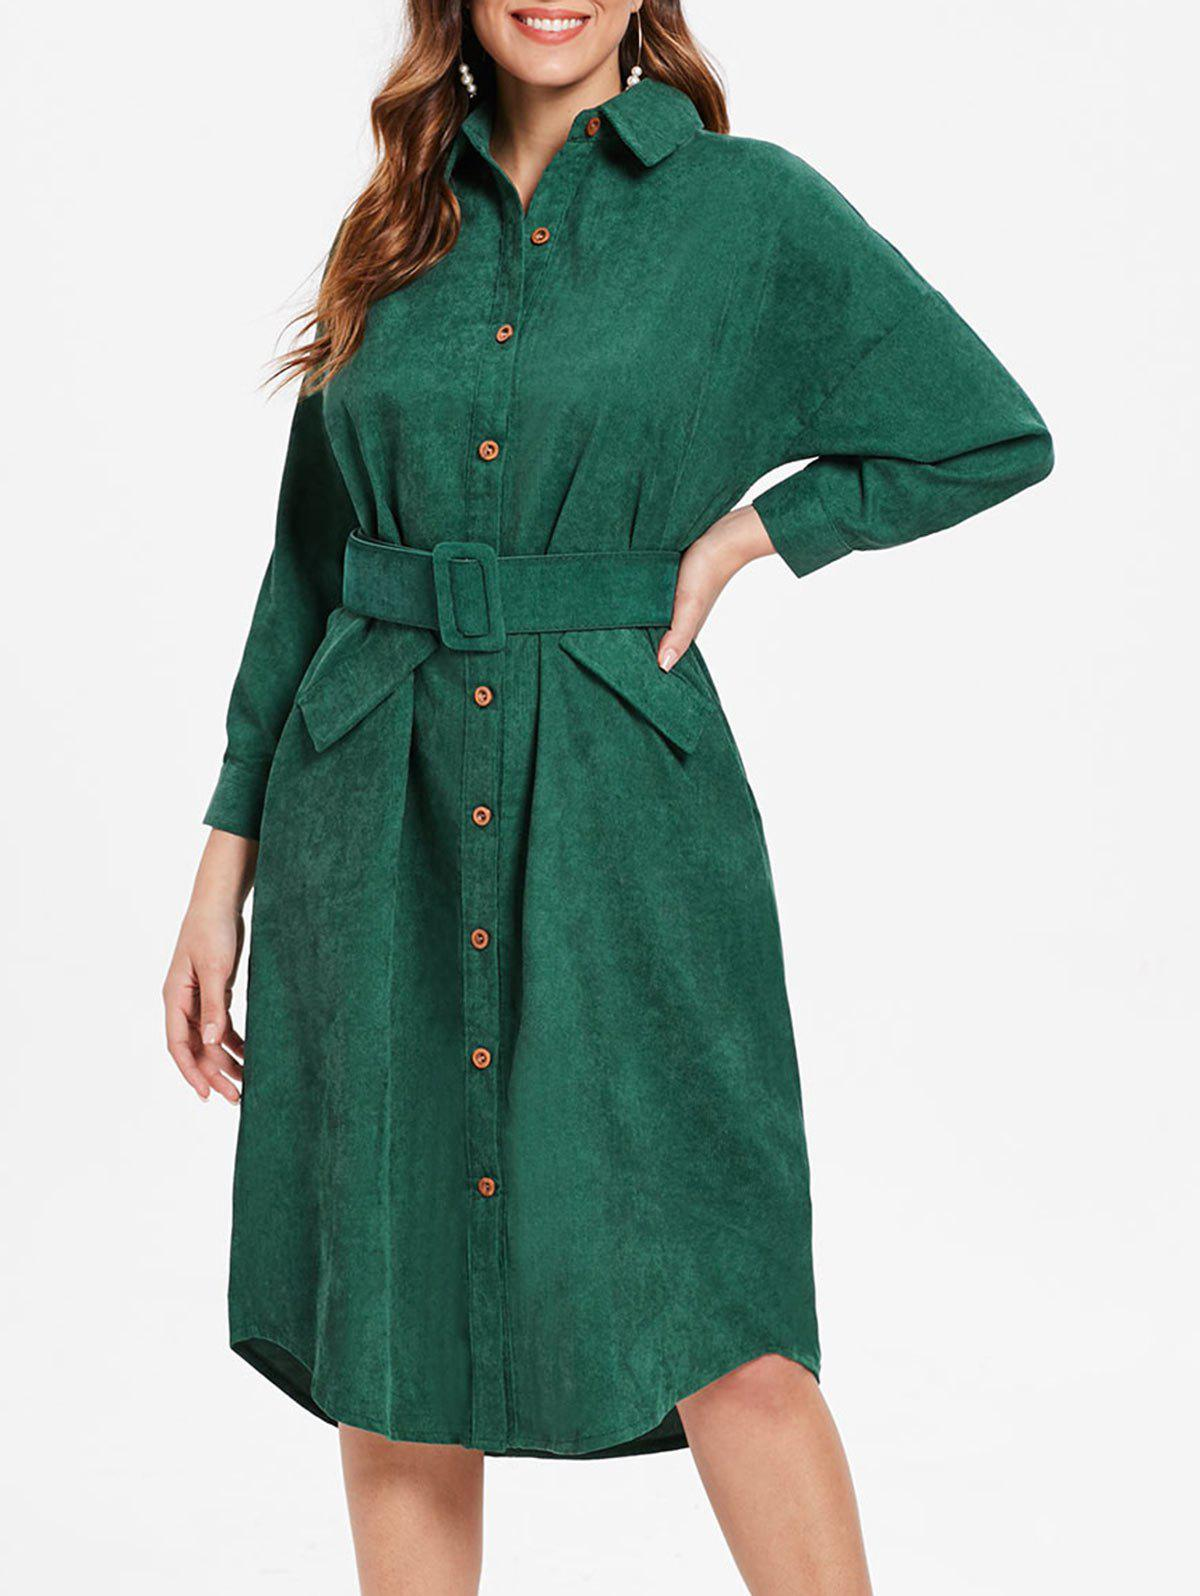 Hot Cuff Sleeve Belted Corduroy Dress